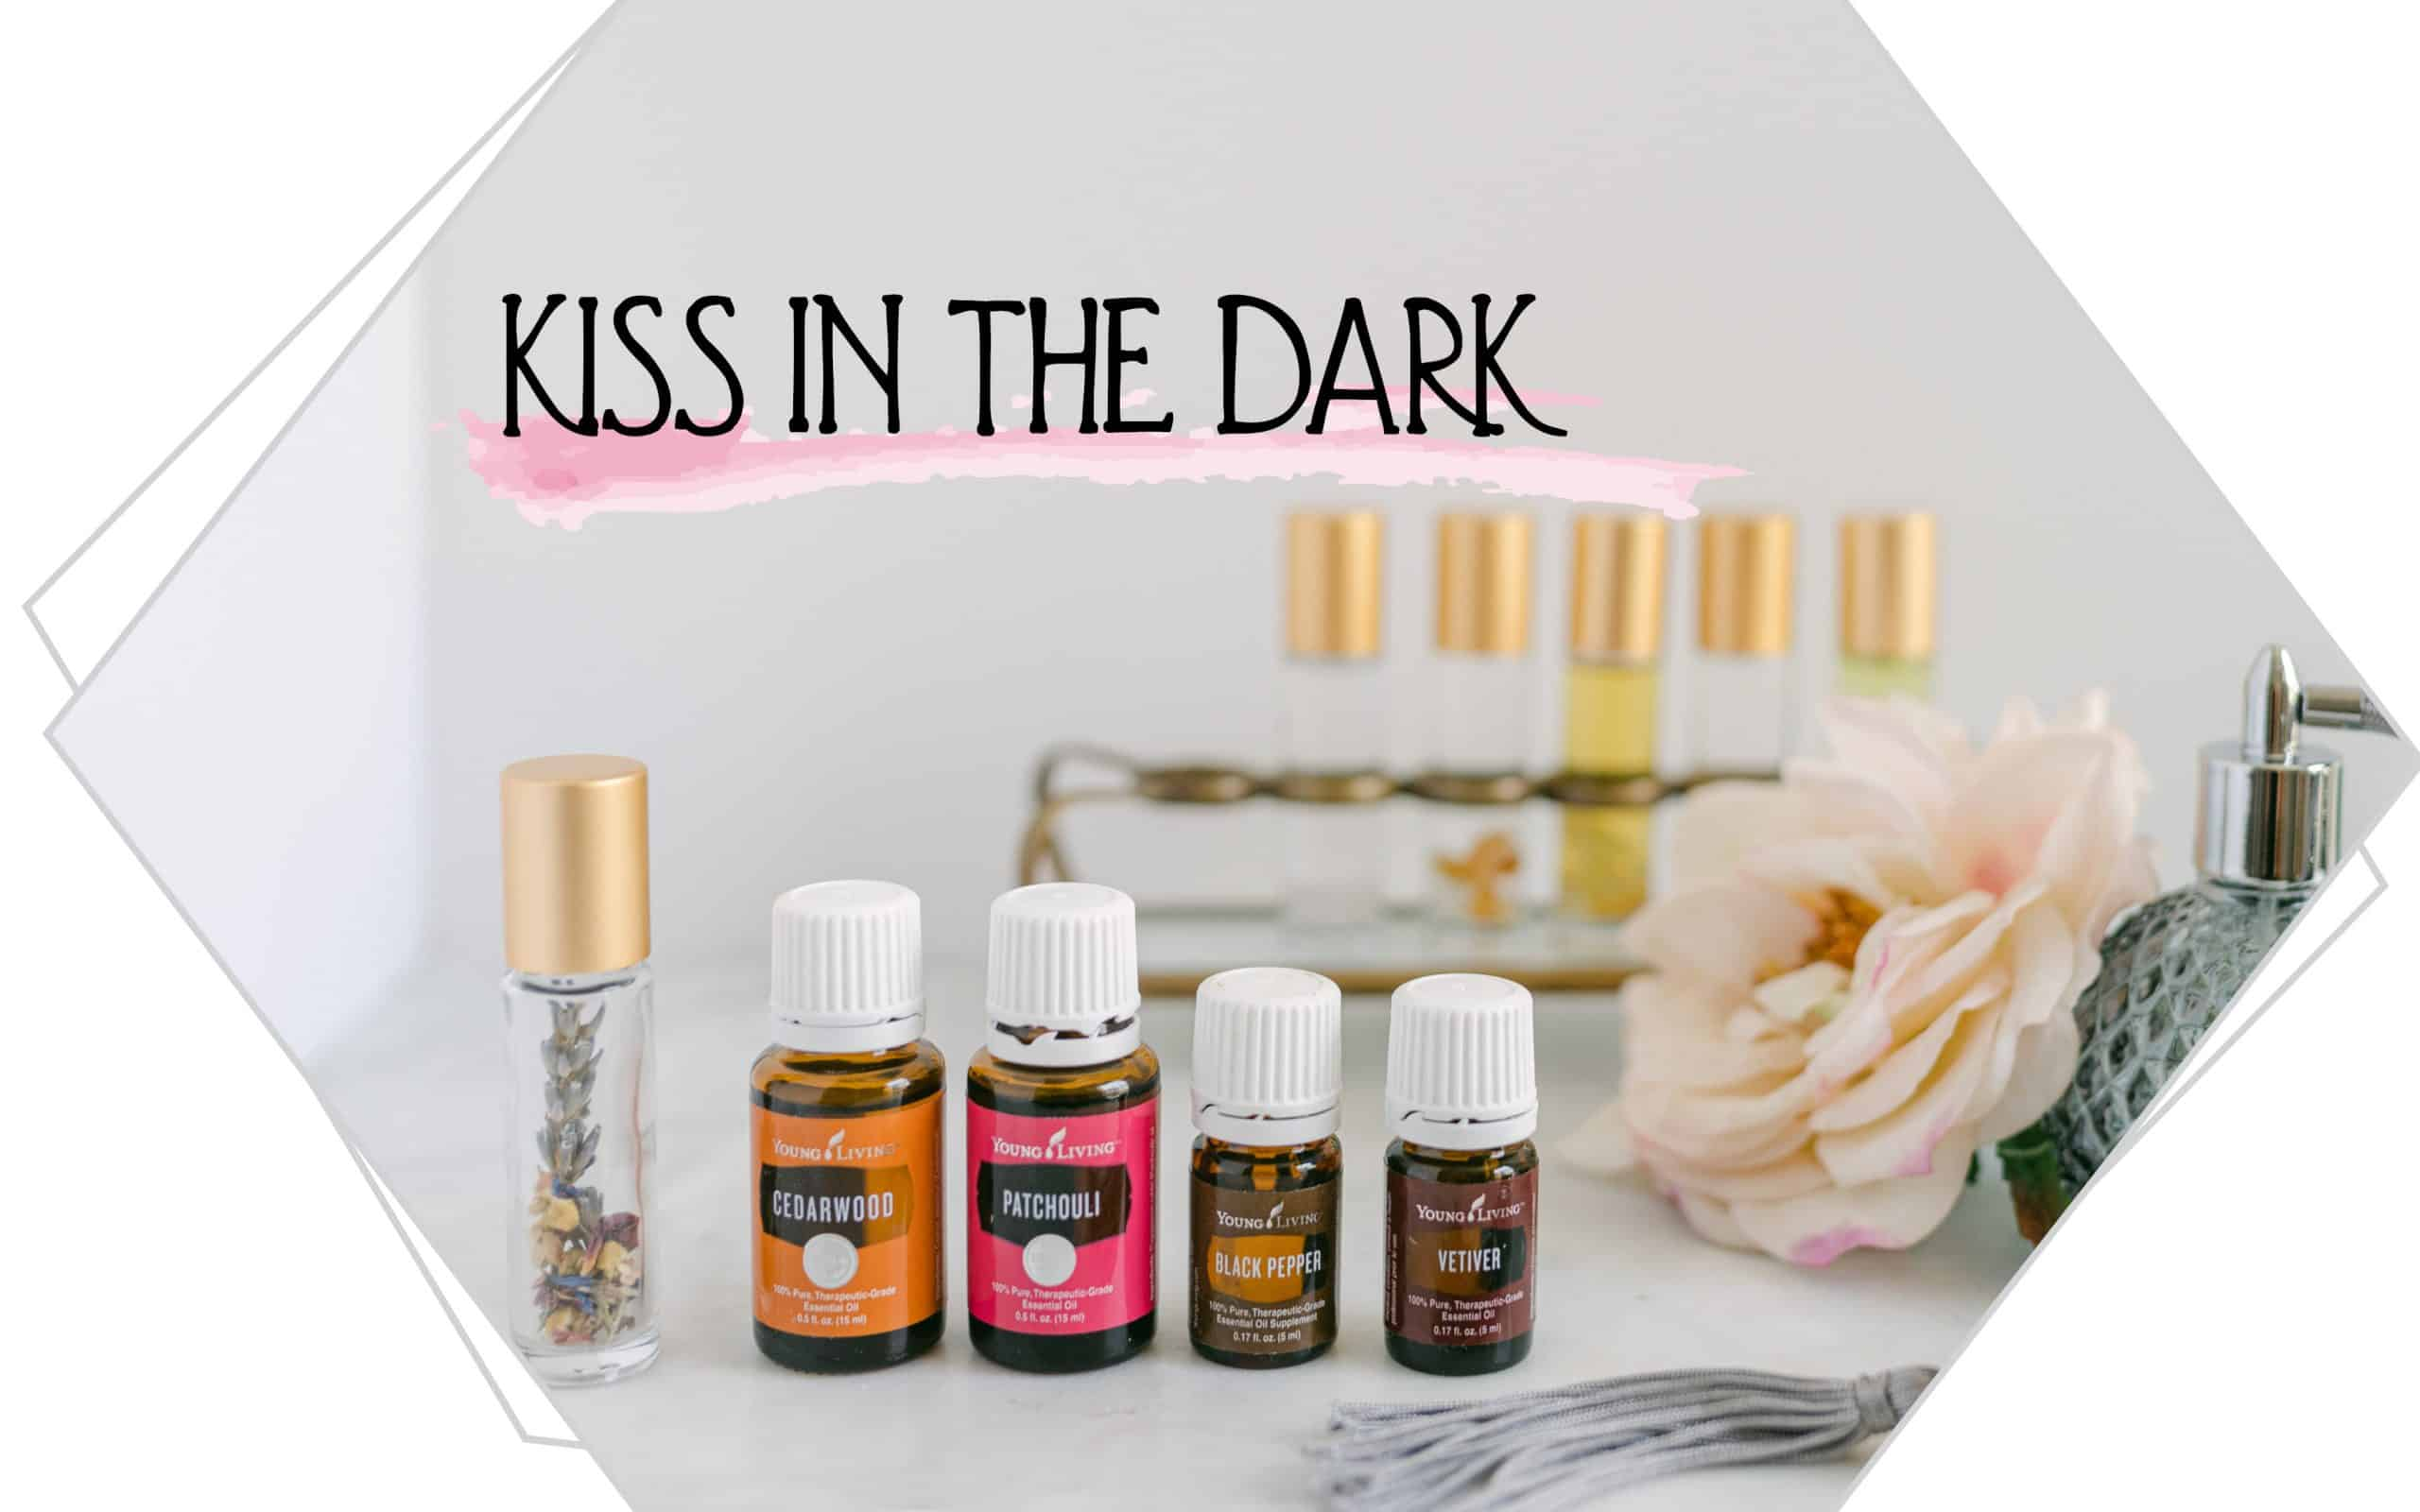 Kiss the Dark written on a background with essential oil and roller bottles.